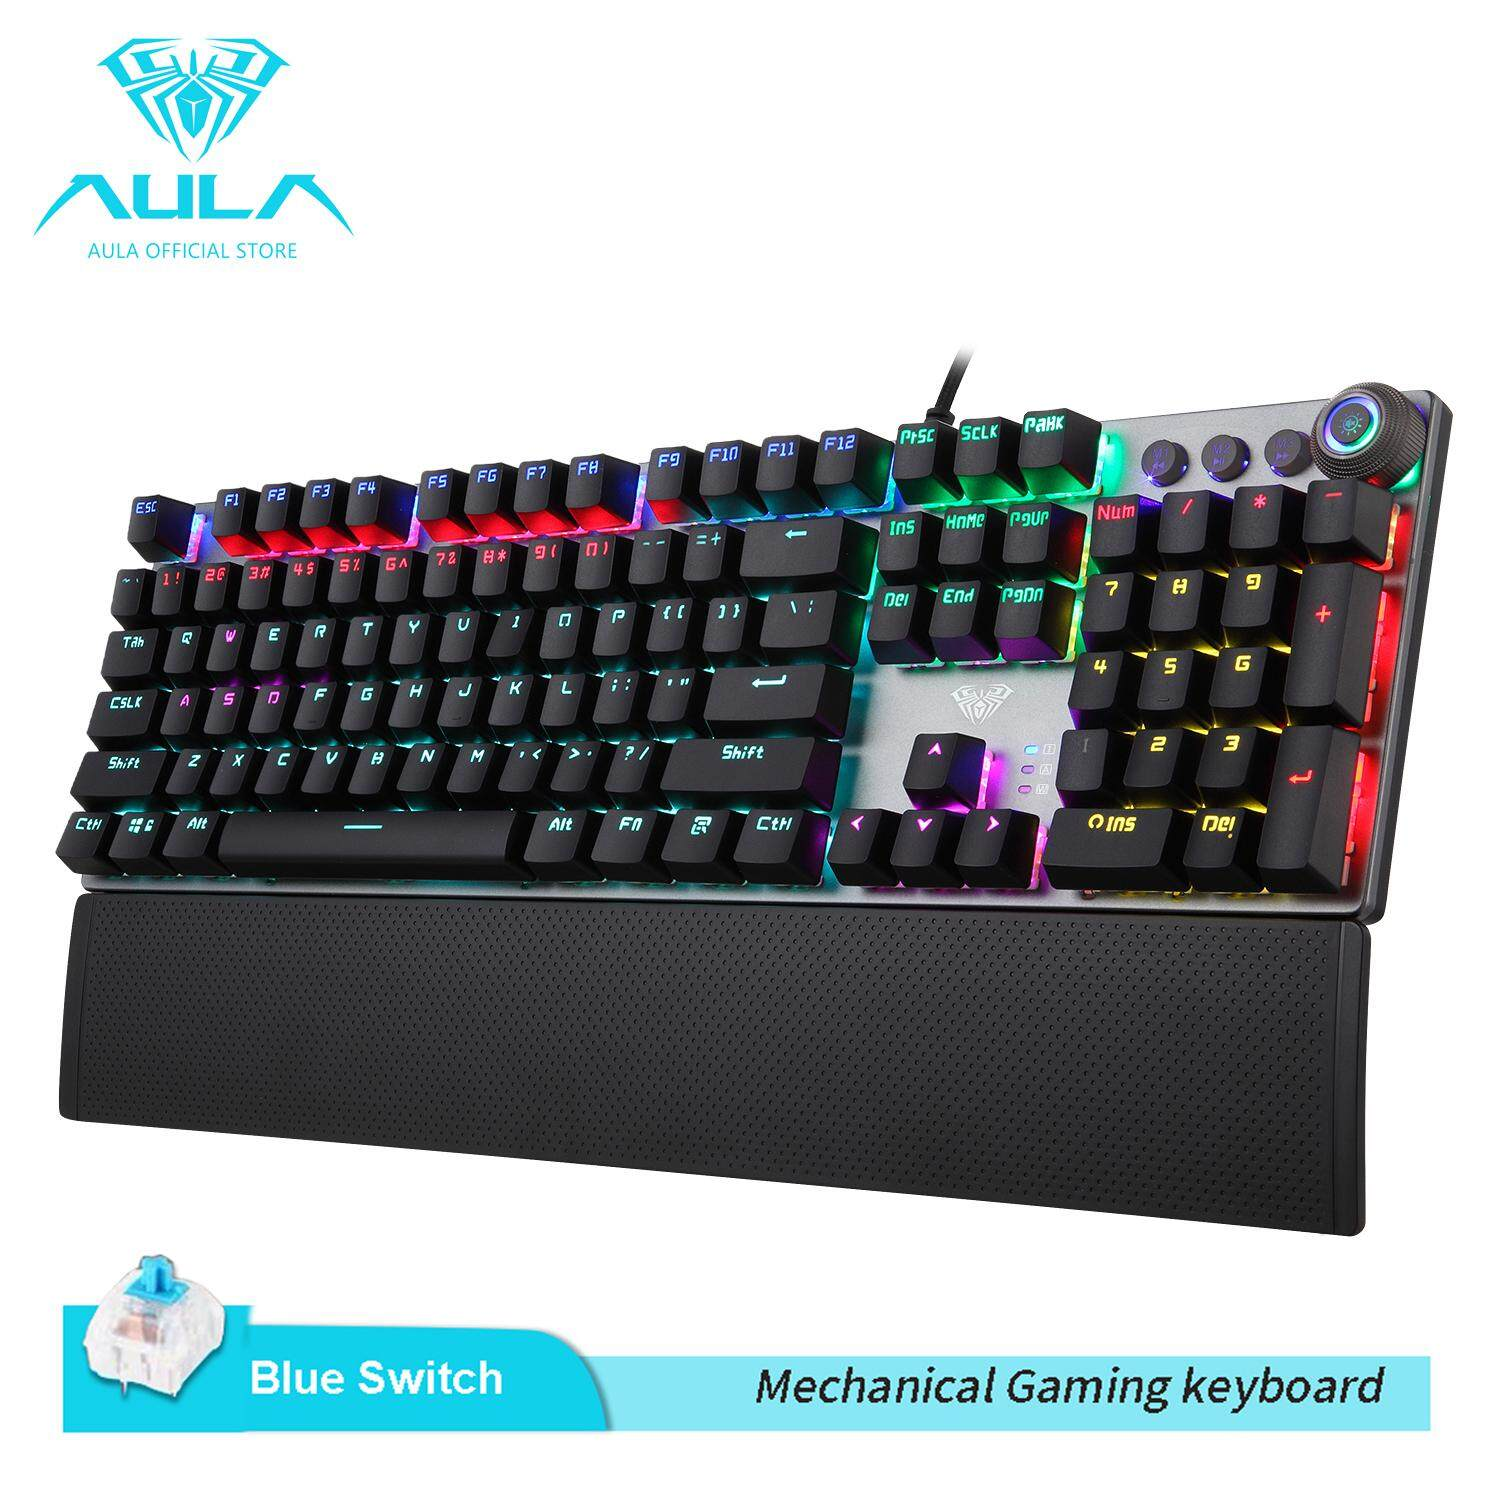 AULA Mechanical Gaming Keyboard Multimedia Control Button  PC Gaming Keyboard with Wrist Rest- F2088